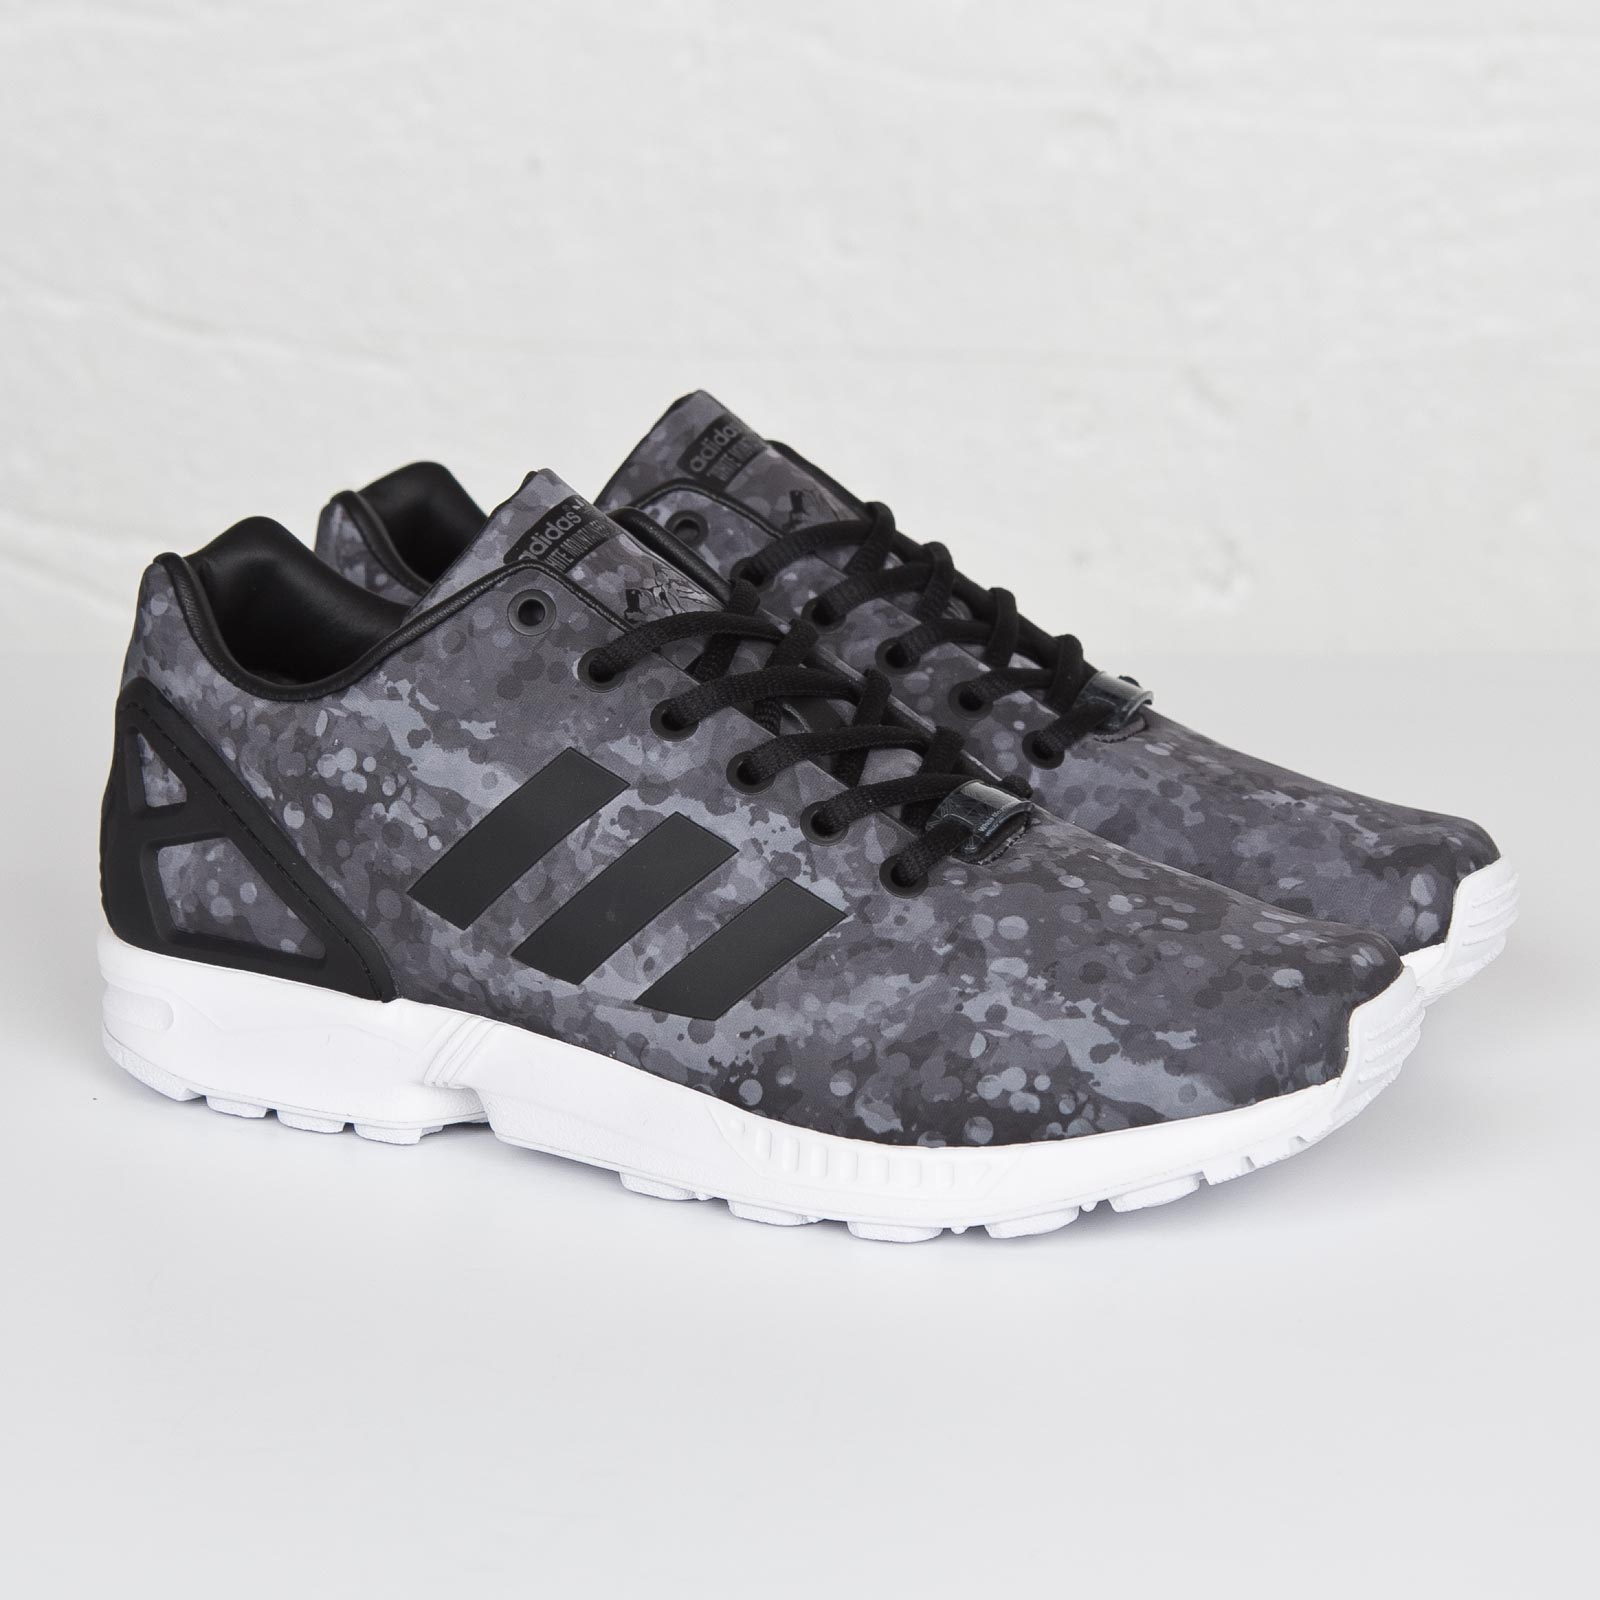 c94d39fe53d7 adidas ZX Flux White Mountaineering - Af6228 - Sneakersnstuff ...